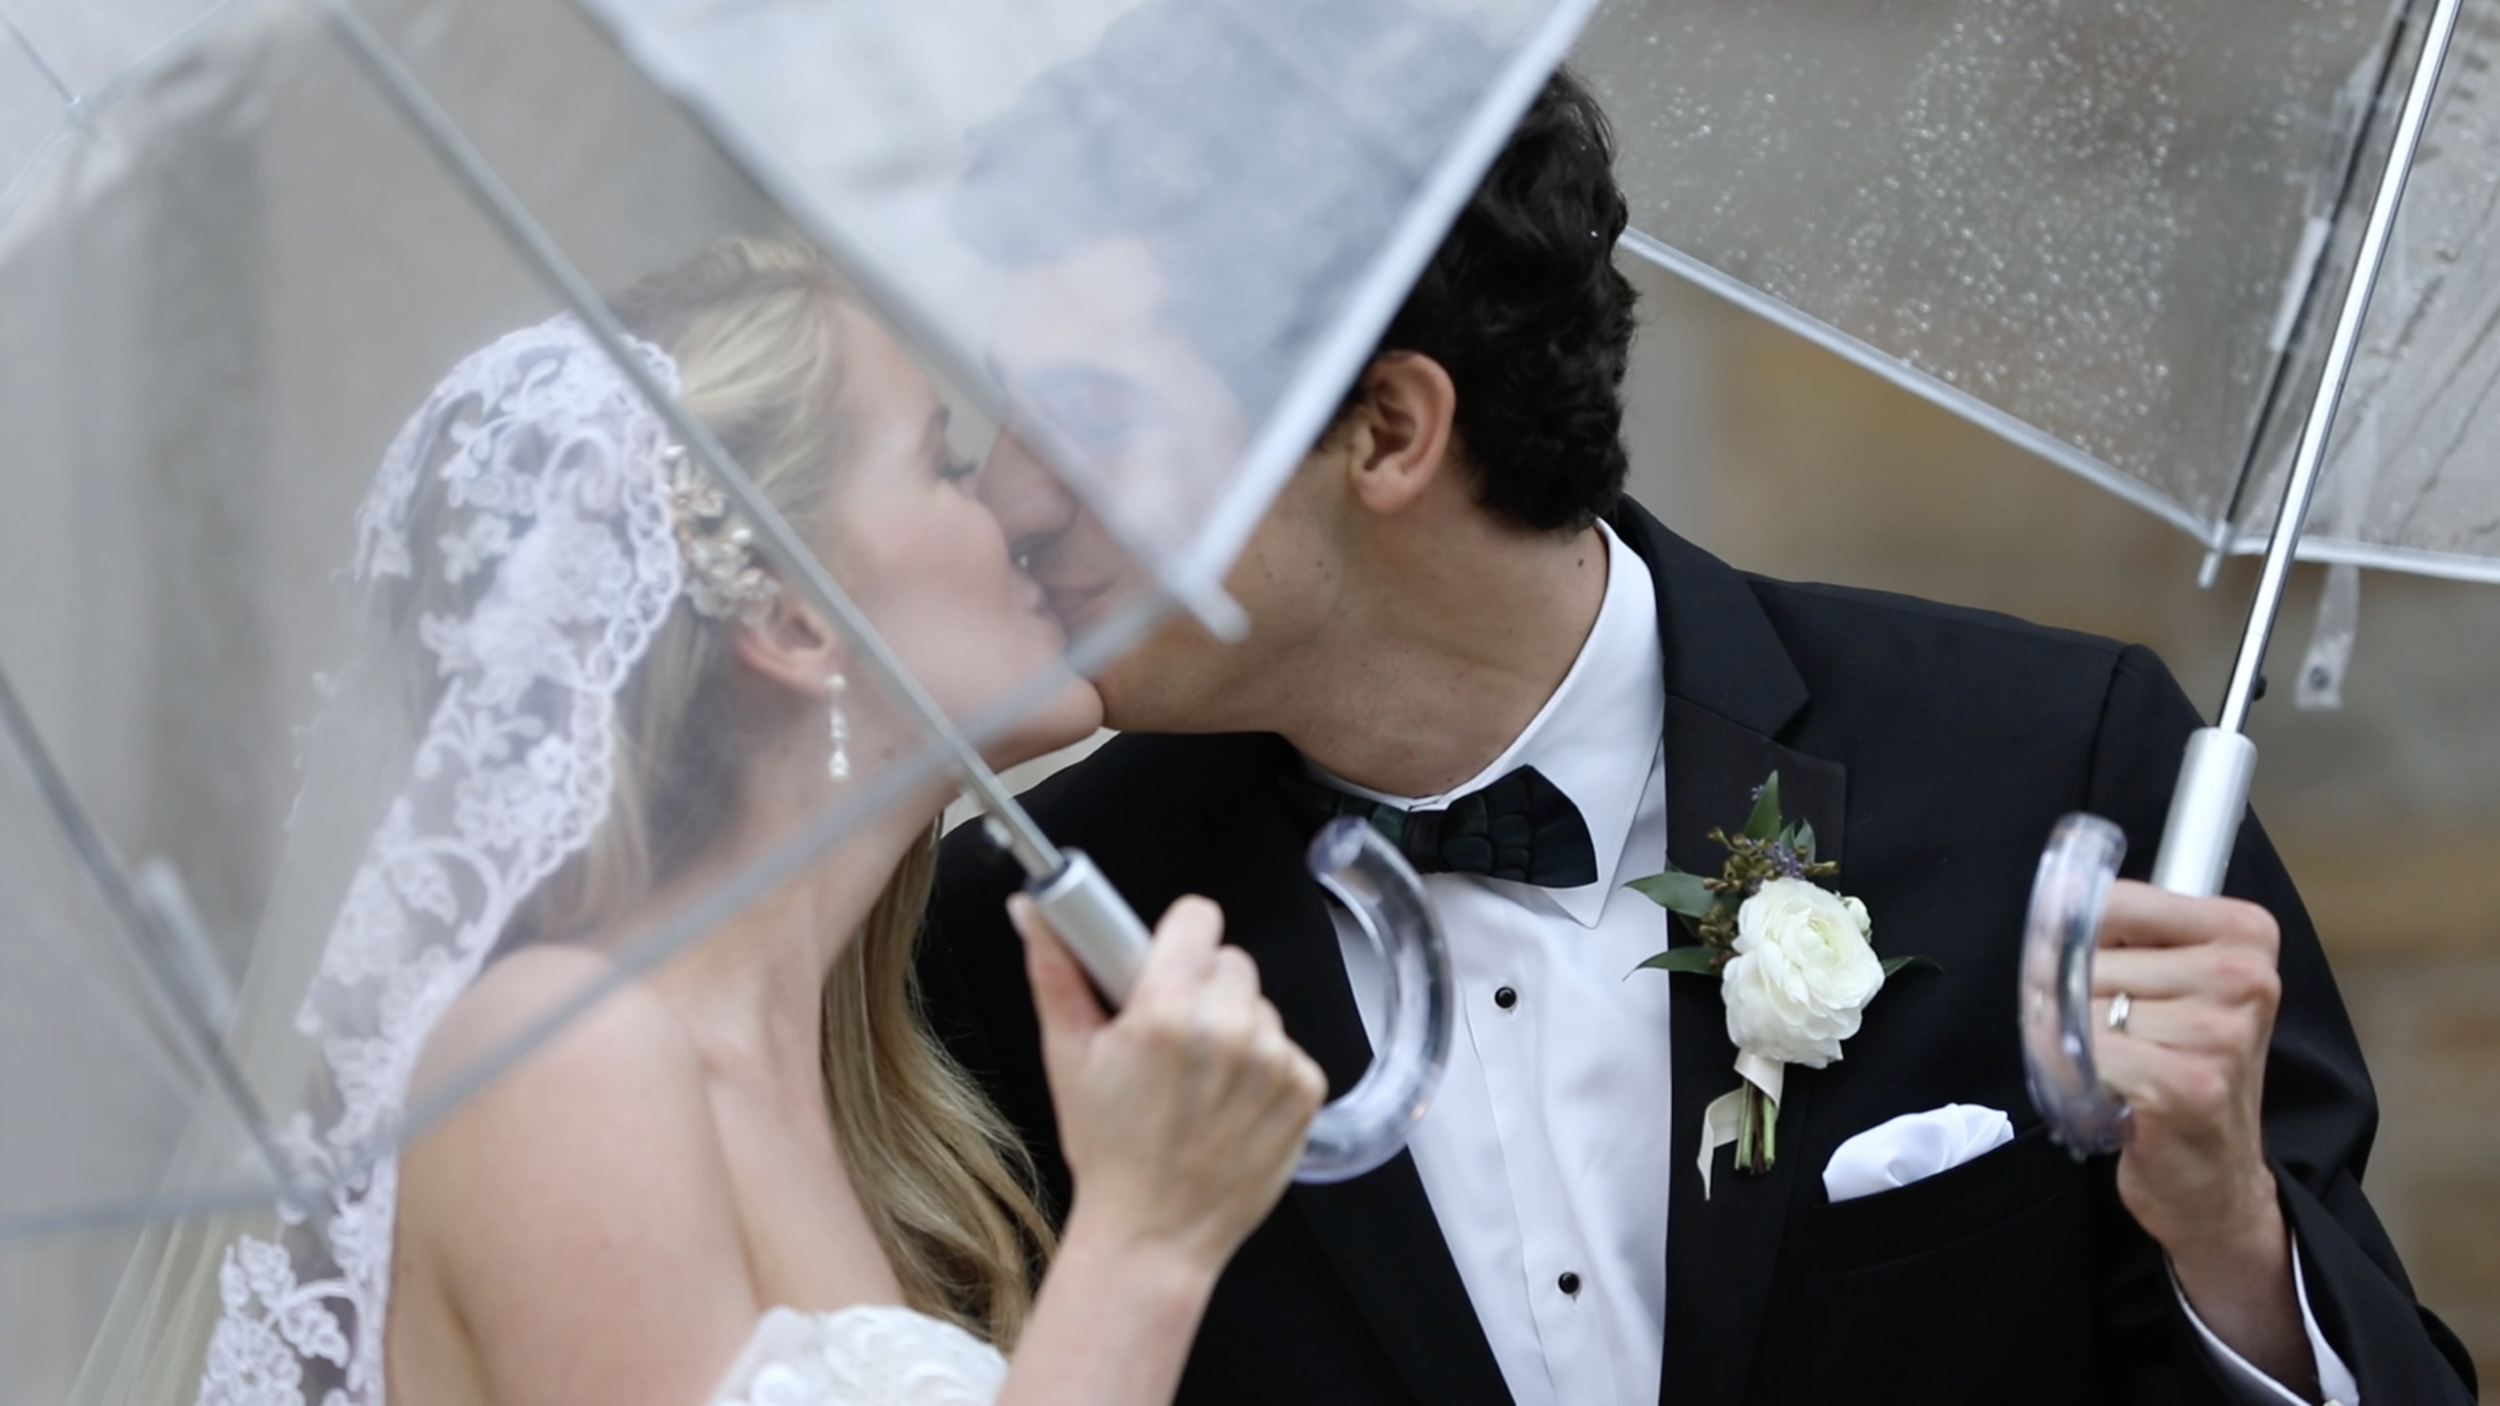 WEDDINGS - We capture the sights and sounds on your wedding day that you will never want to forget.